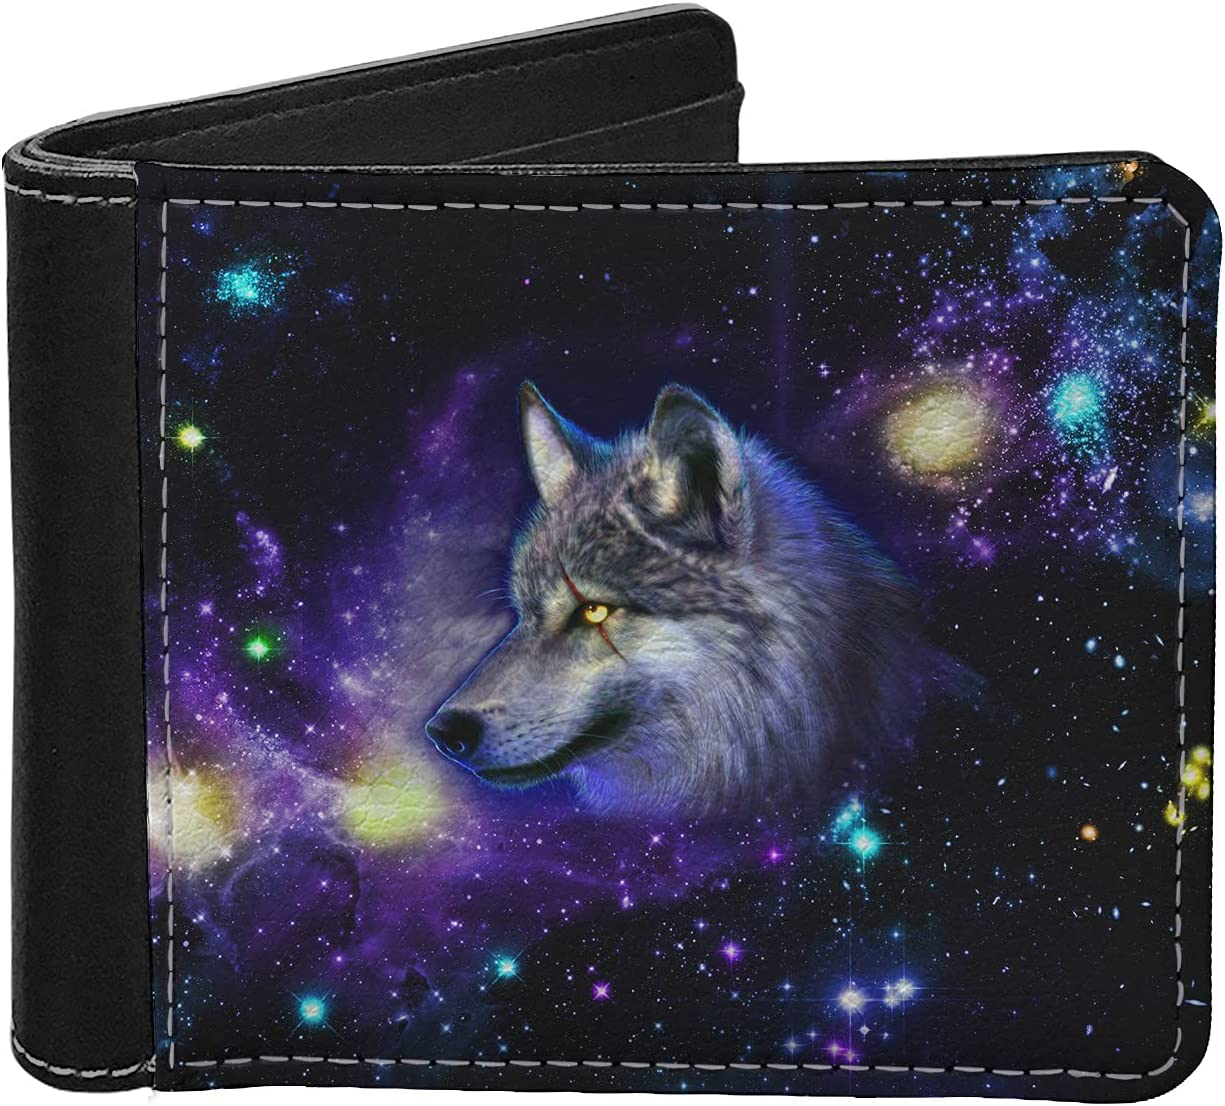 Aoopistc Galaxy Space Wolf Men's Wallets Novelty N Starry Special New sales price Purple